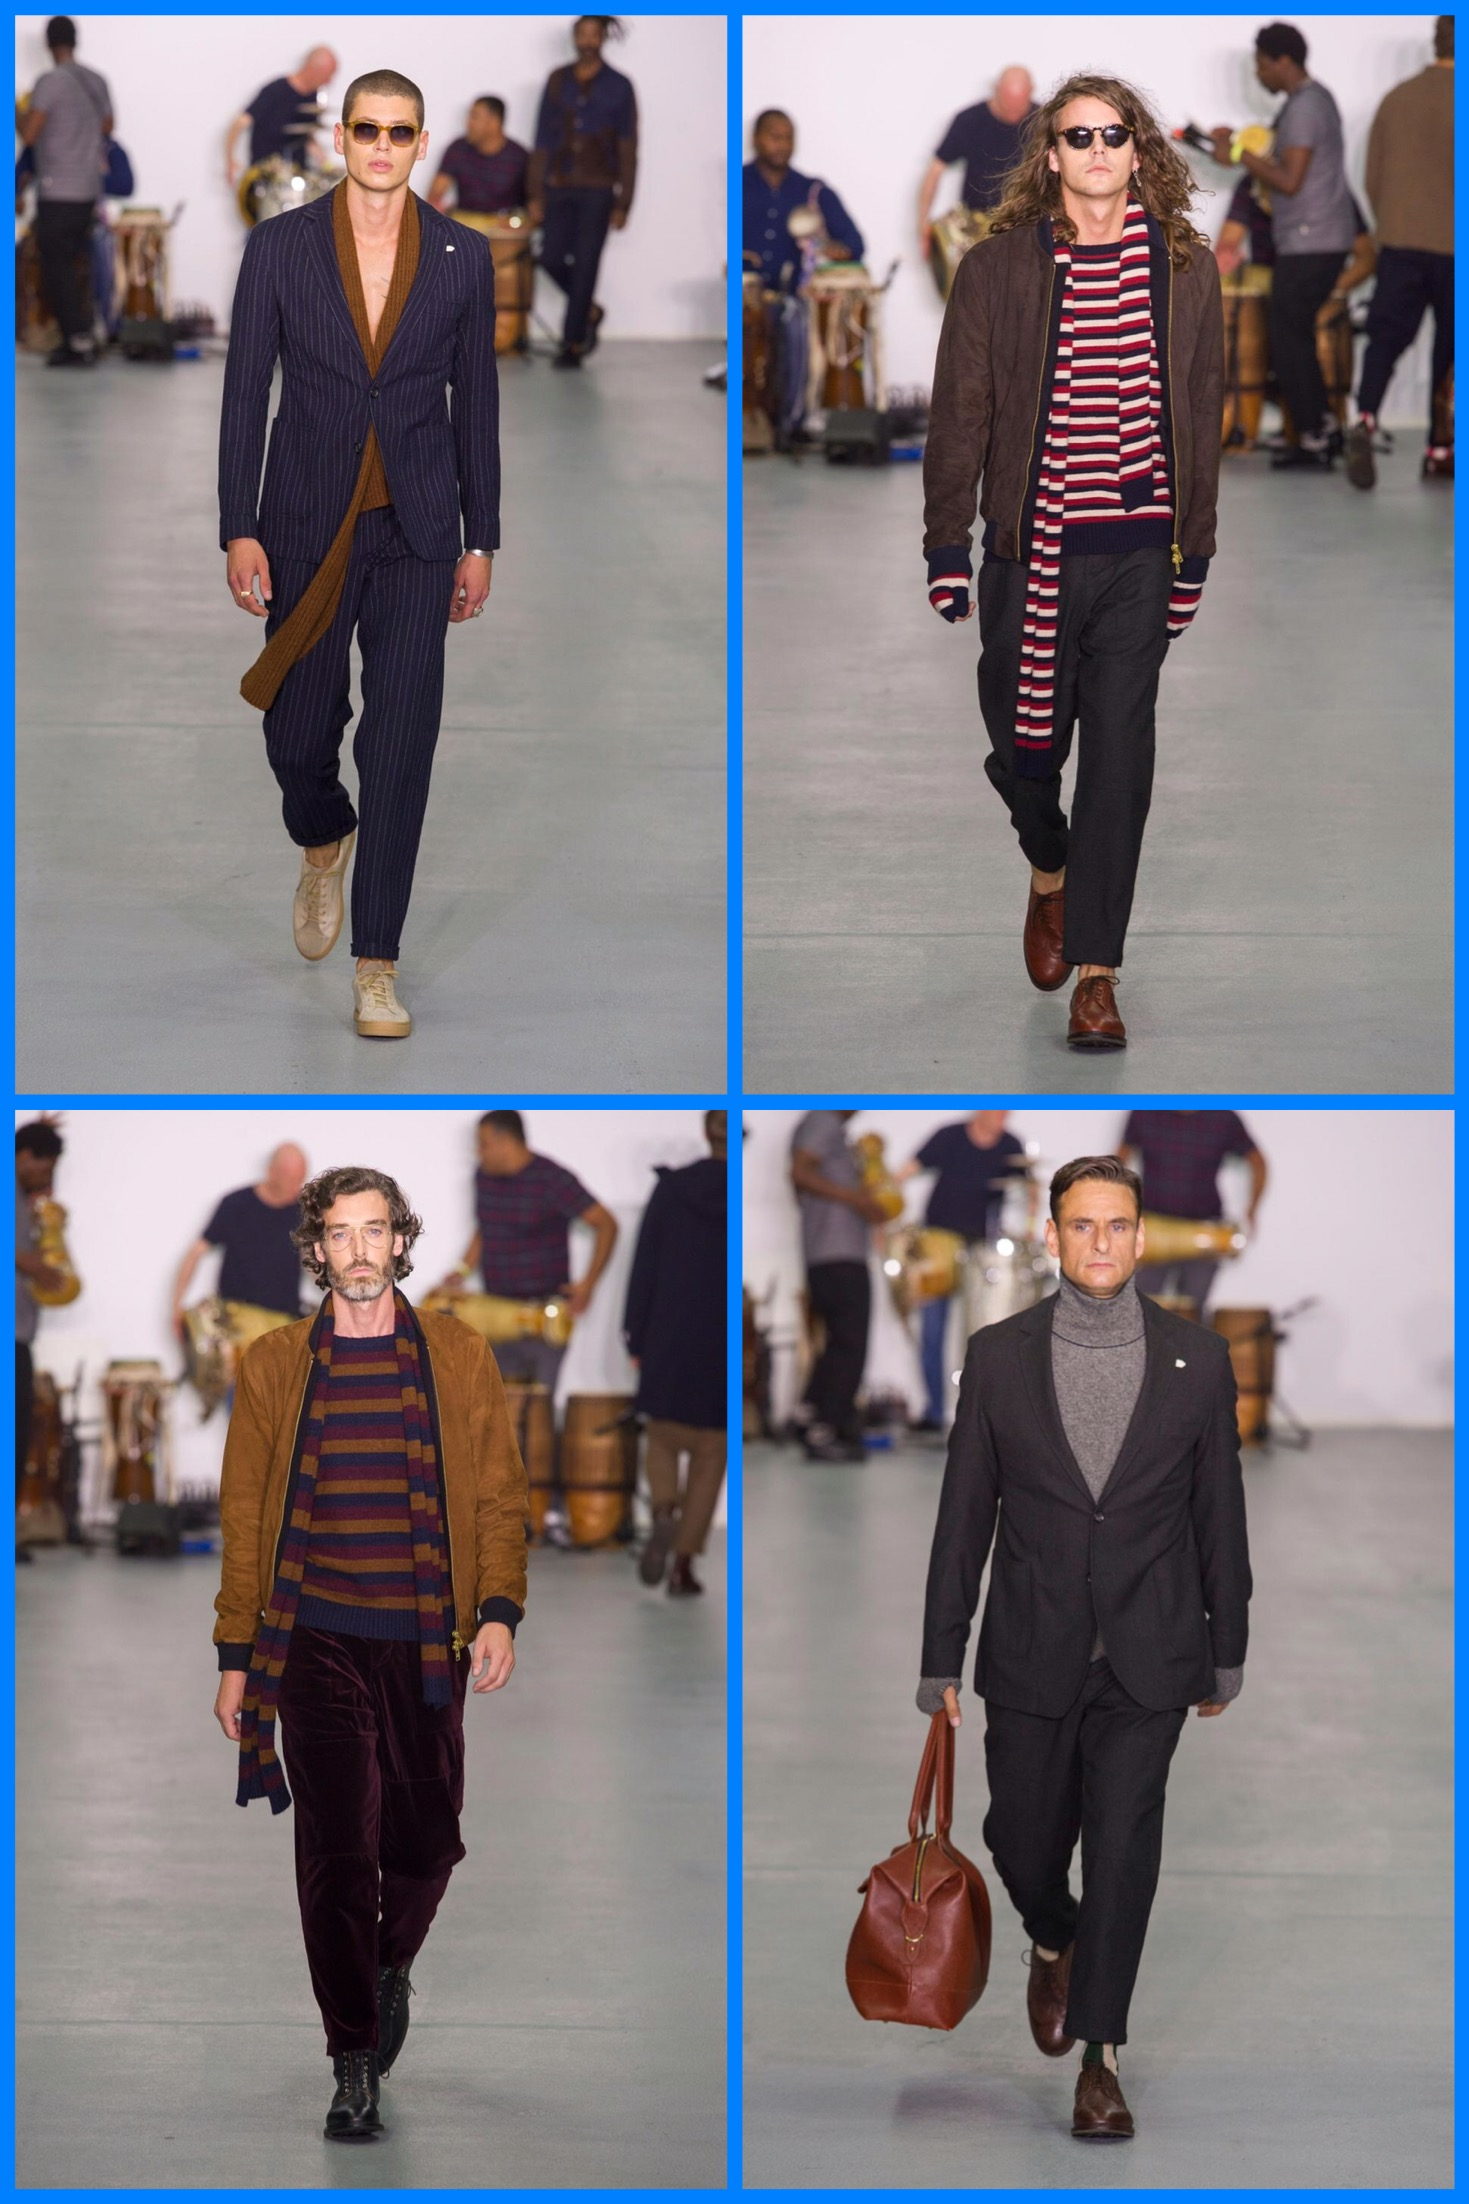 london-fashion-week-pret-a-porter-spring-summer-2017-style-oliver-spencer